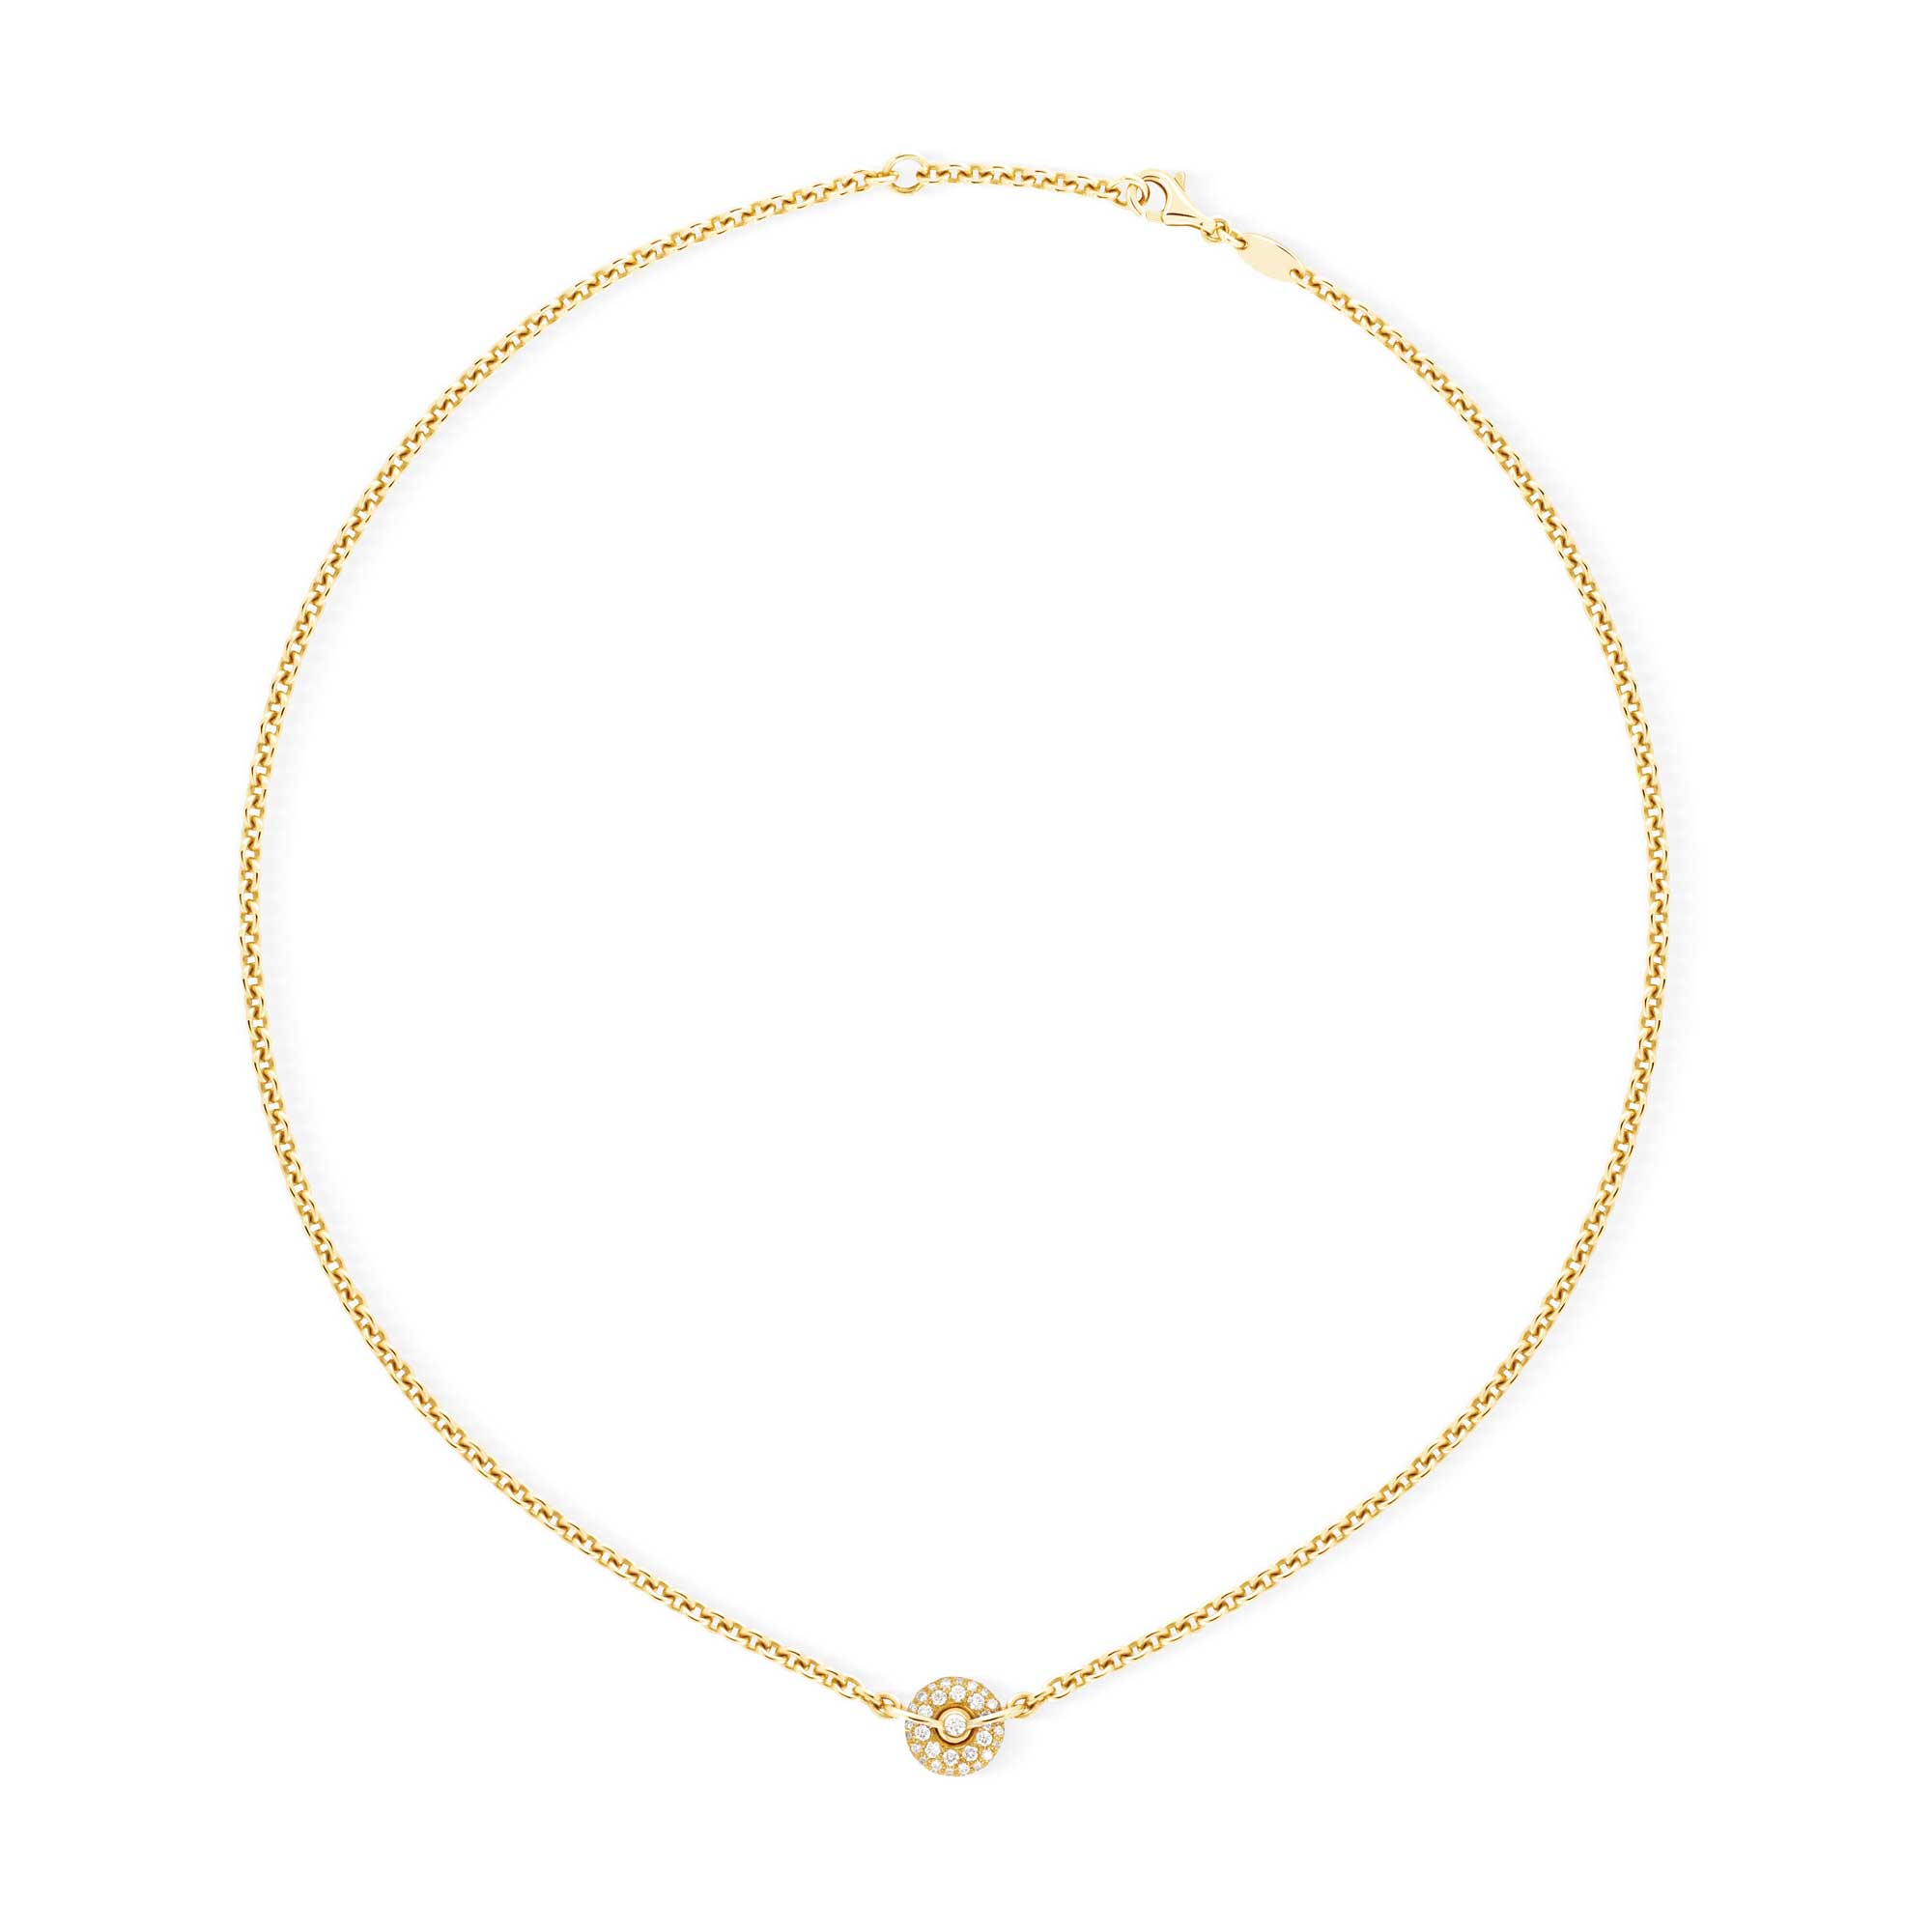 Yellow Gold Chain Necklace with Diamonds - Canaglia Paris-Milan Fine Jewelry